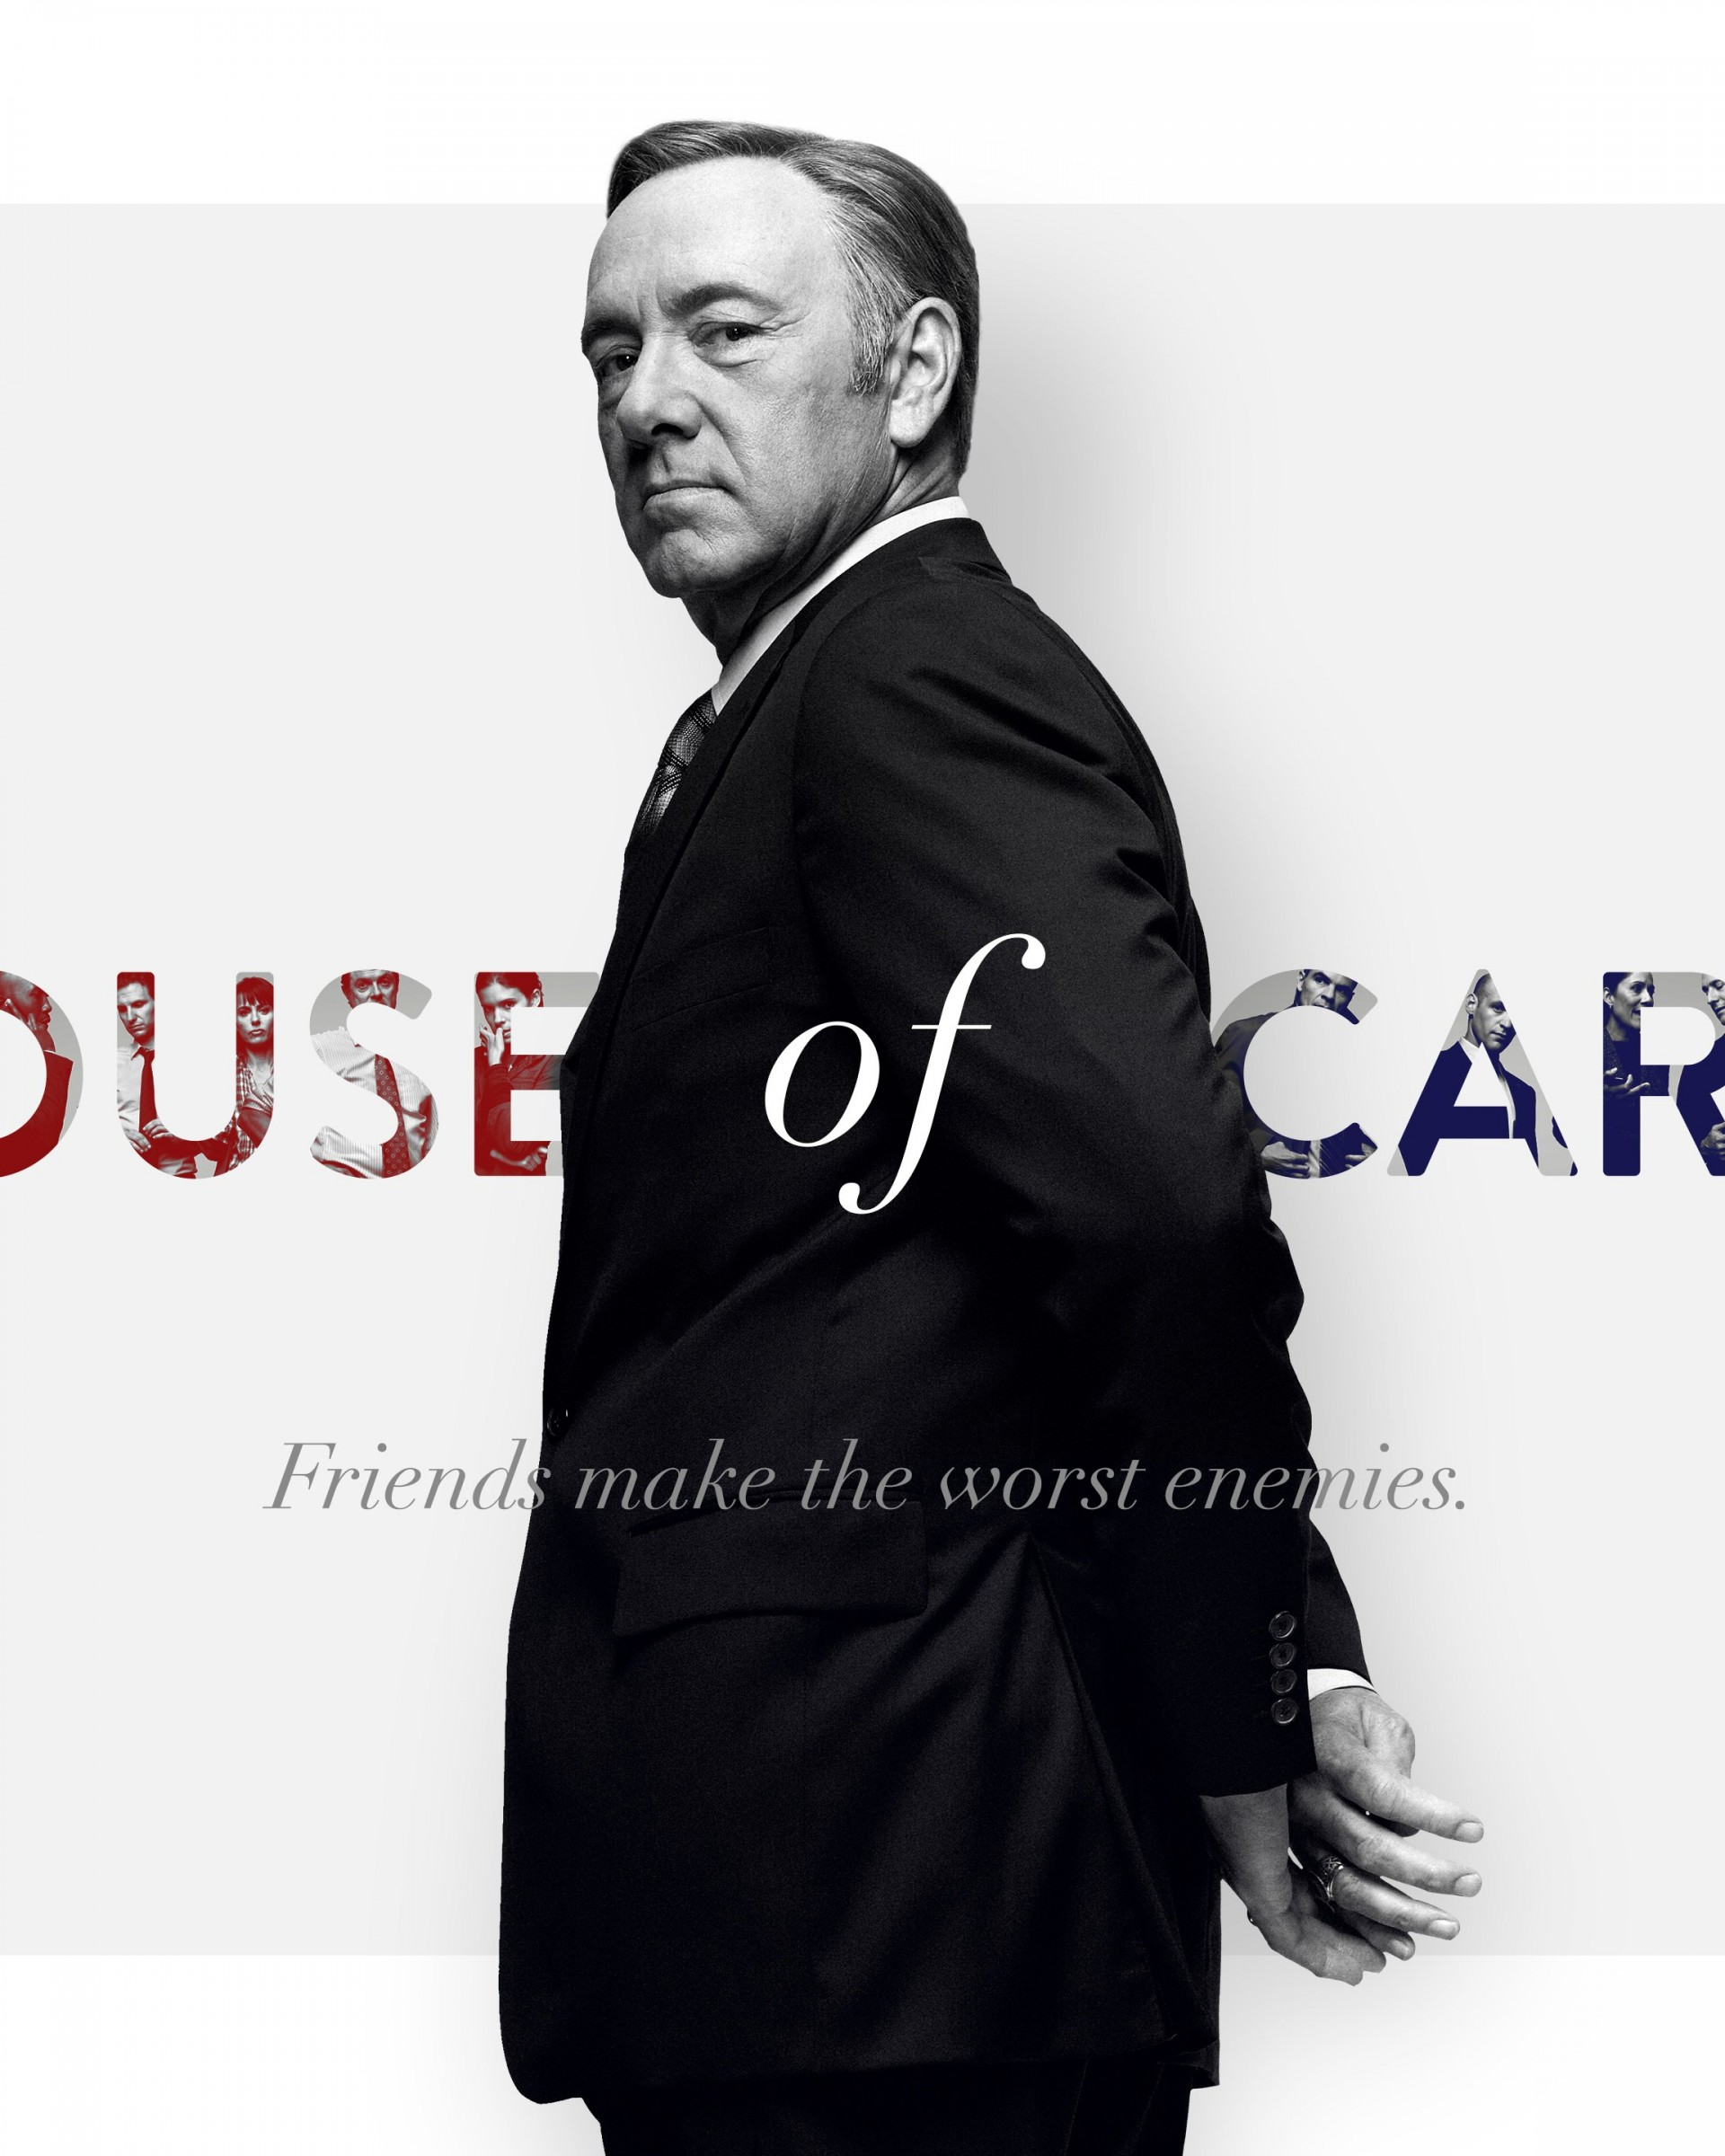 Frank Underwood - House of Cards Wallpaper for Google Nexus 7